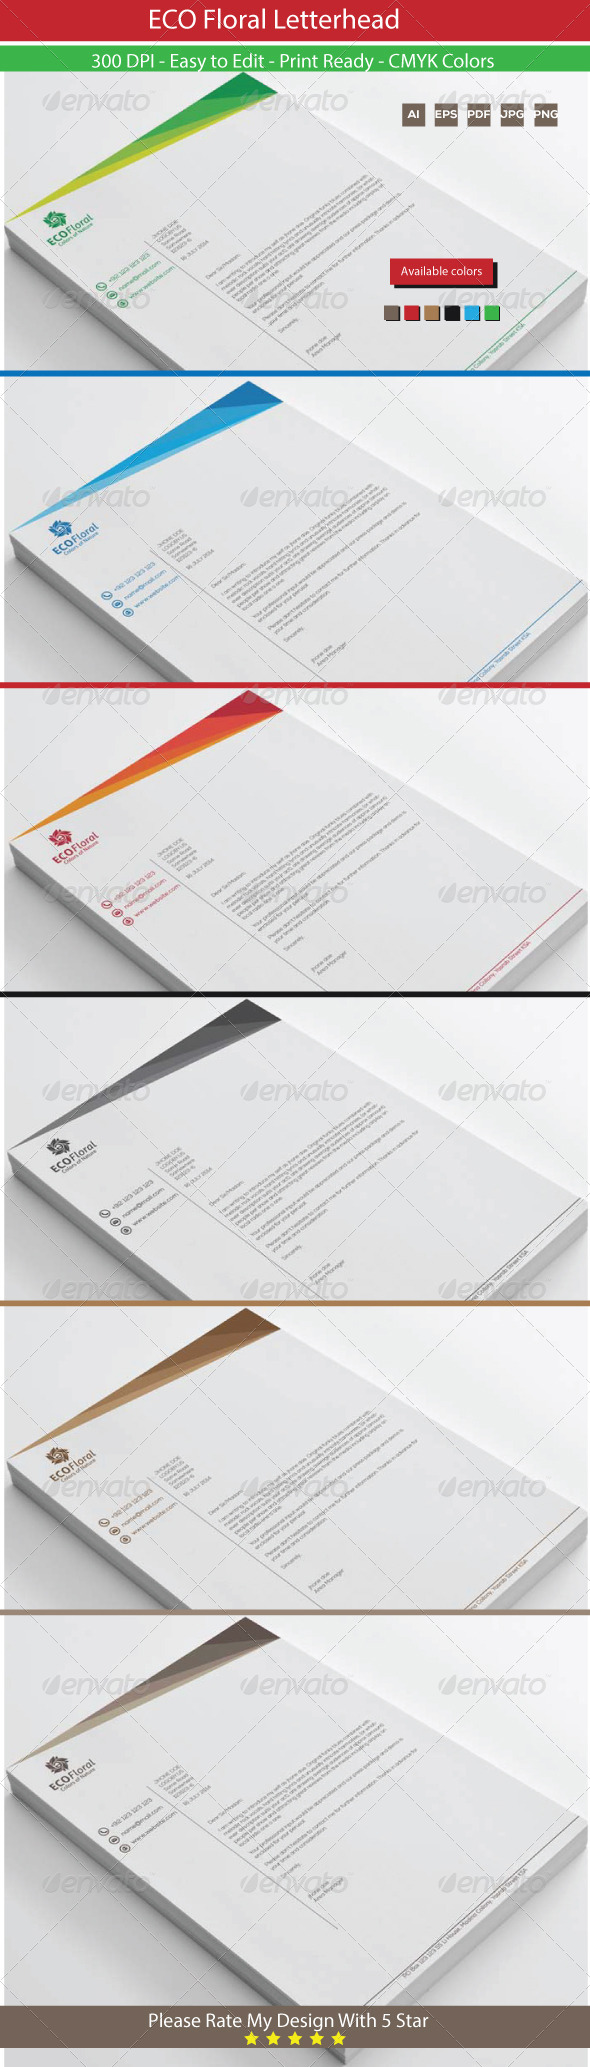 GraphicRiver Eco Floral Graphics Letterhead 8504944